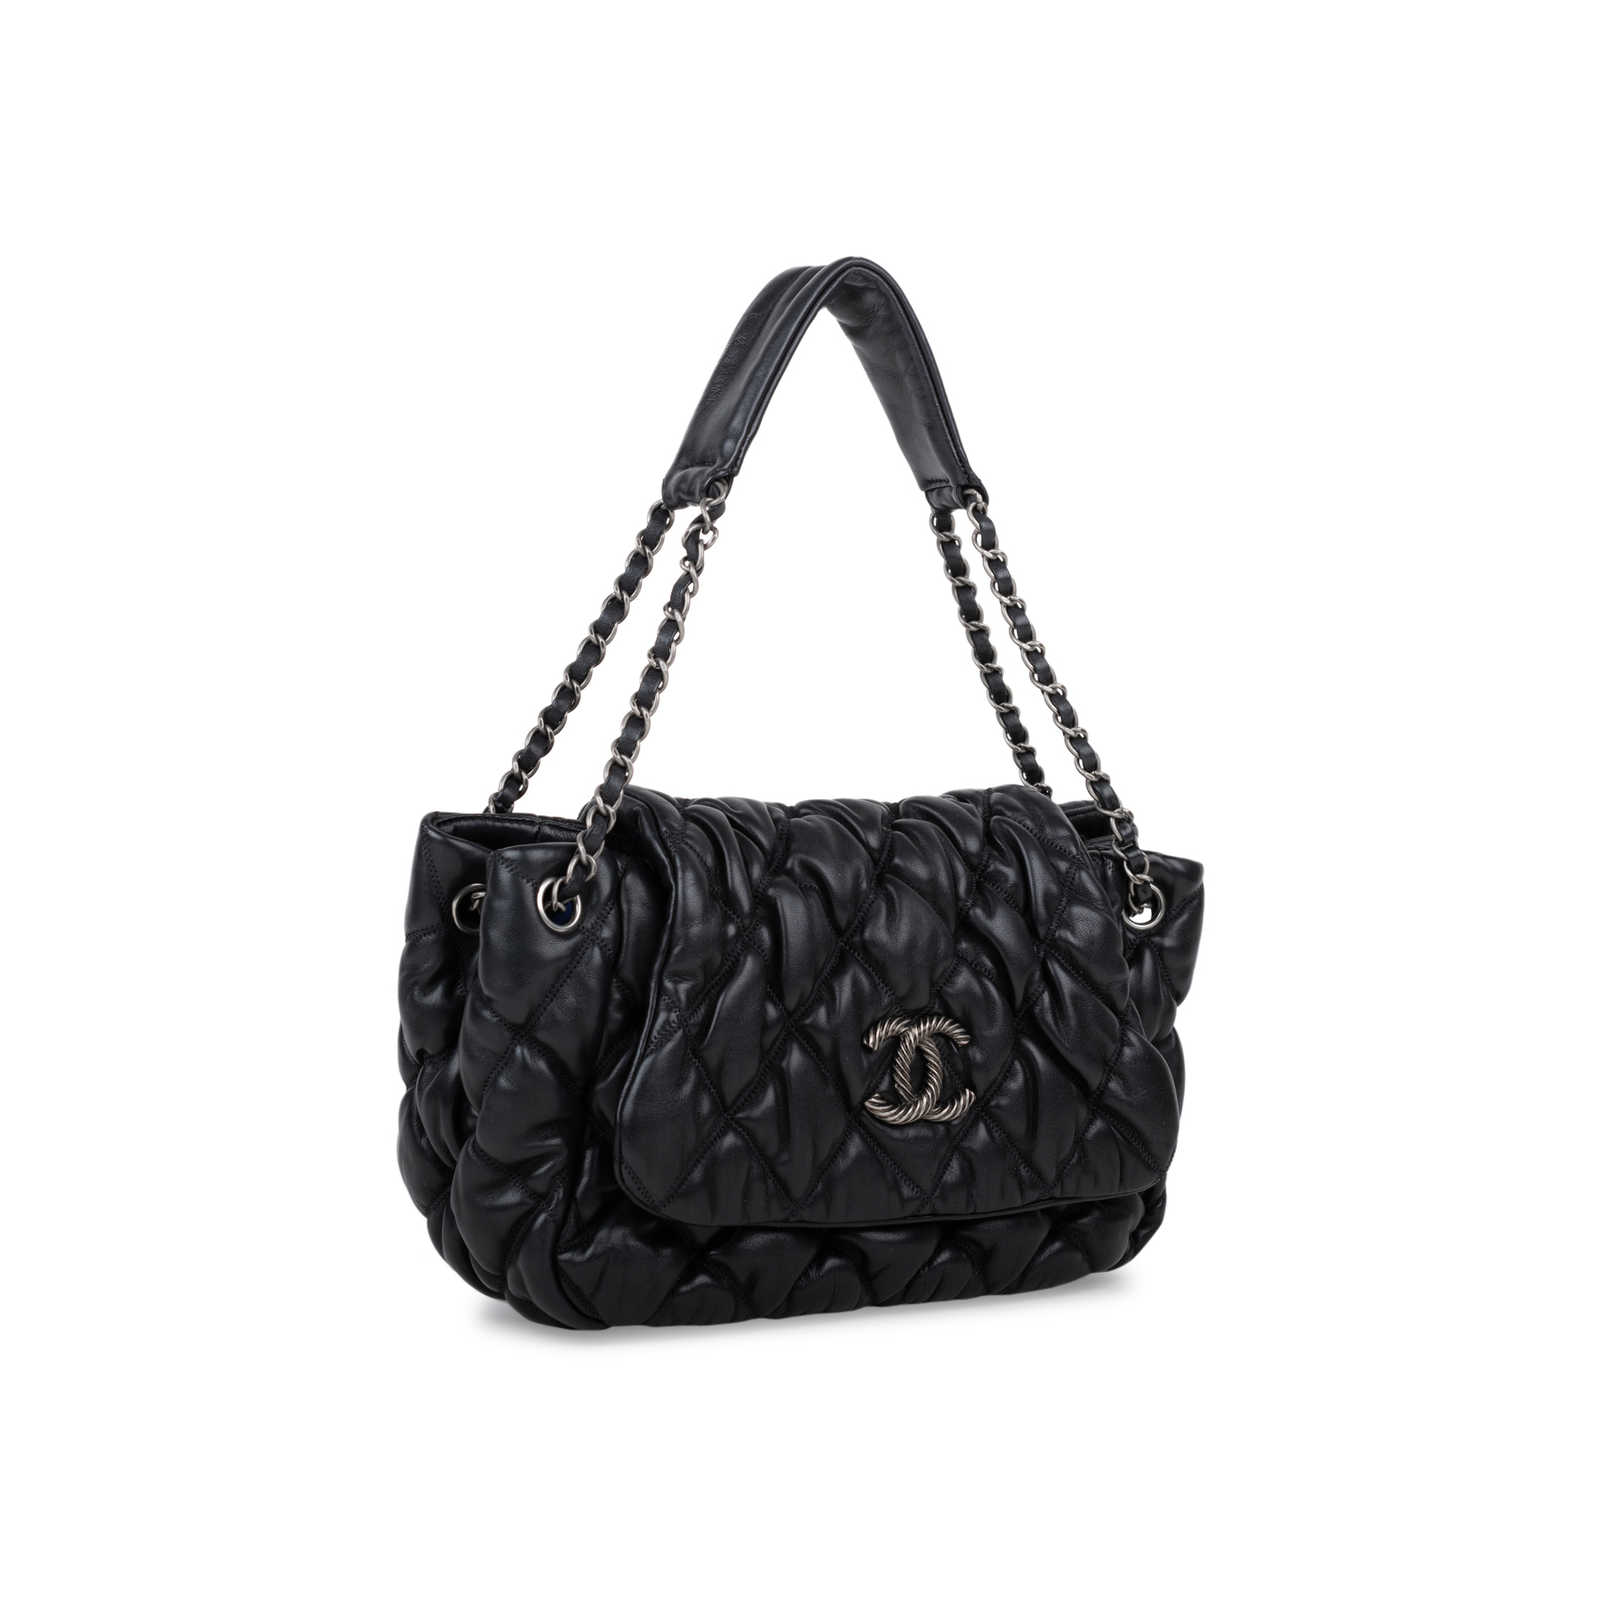 1a73a5bbc673 ... Authentic Second Hand Chanel Bubble Quilt Accordion Flap Bag  (PSS-566-00007) ...